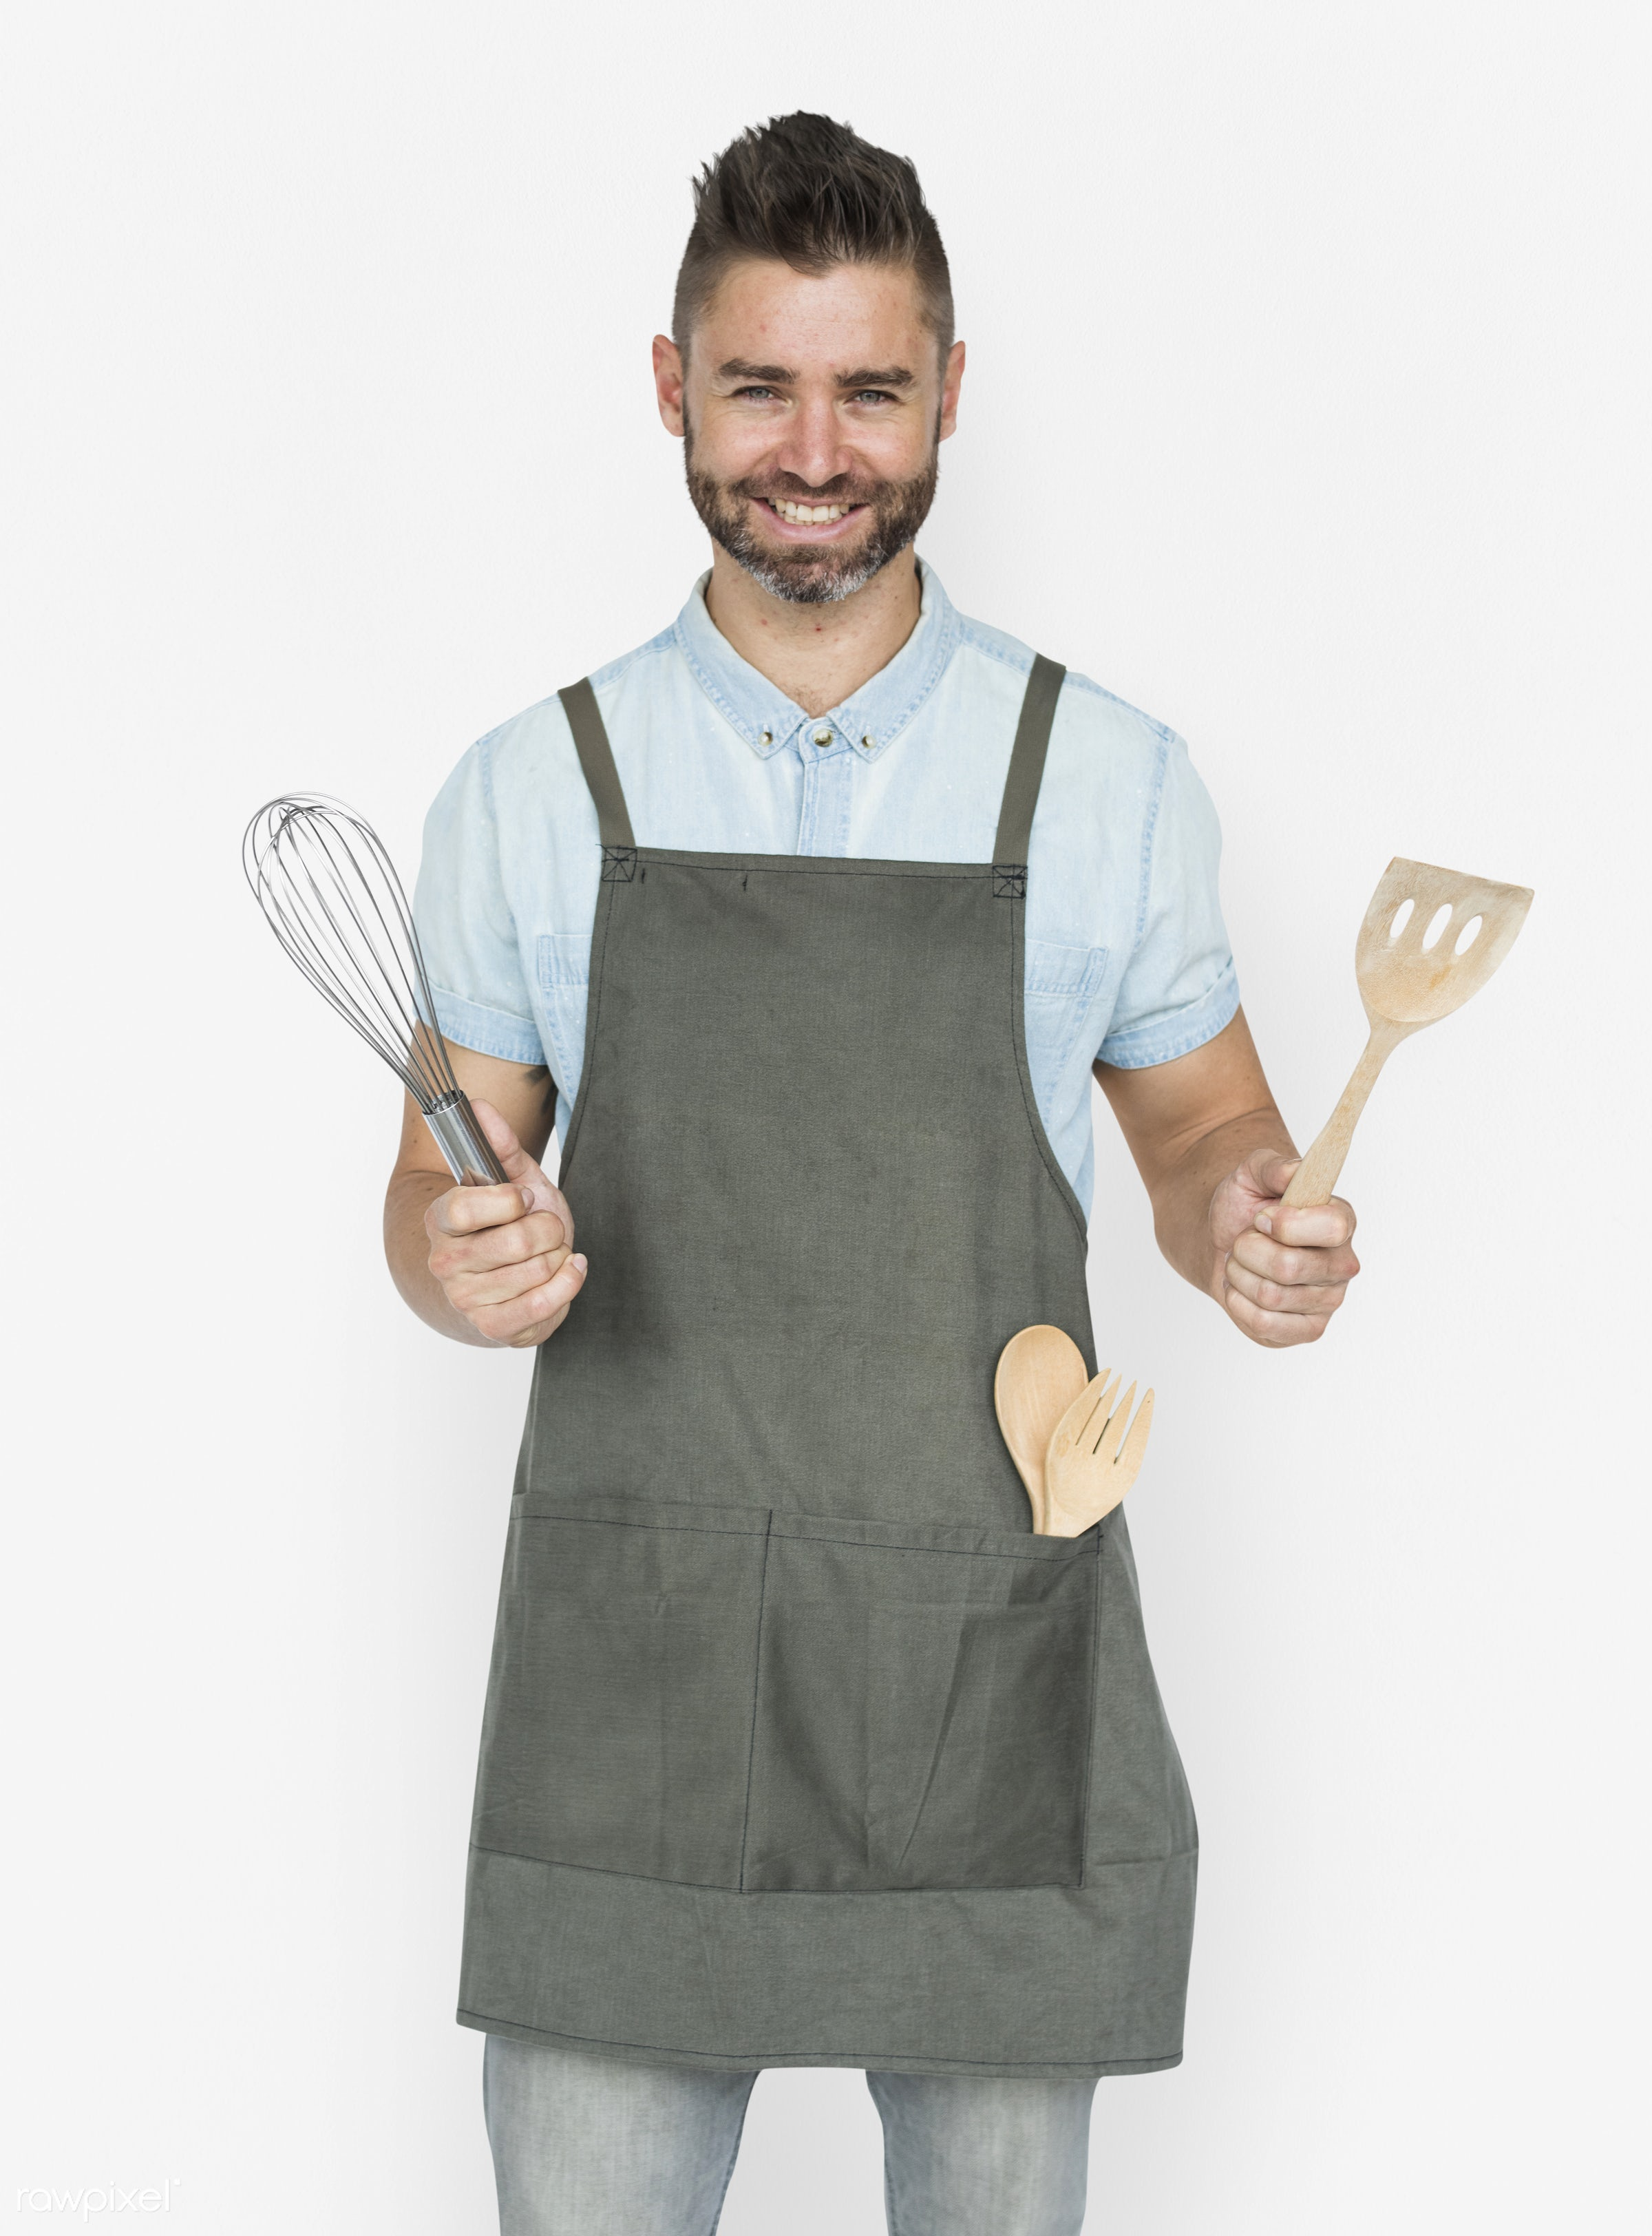 studio, person, model, race, people, style, solo, casual, lifestyle, cooking, man, isolated, guy, male, white, gesture,...